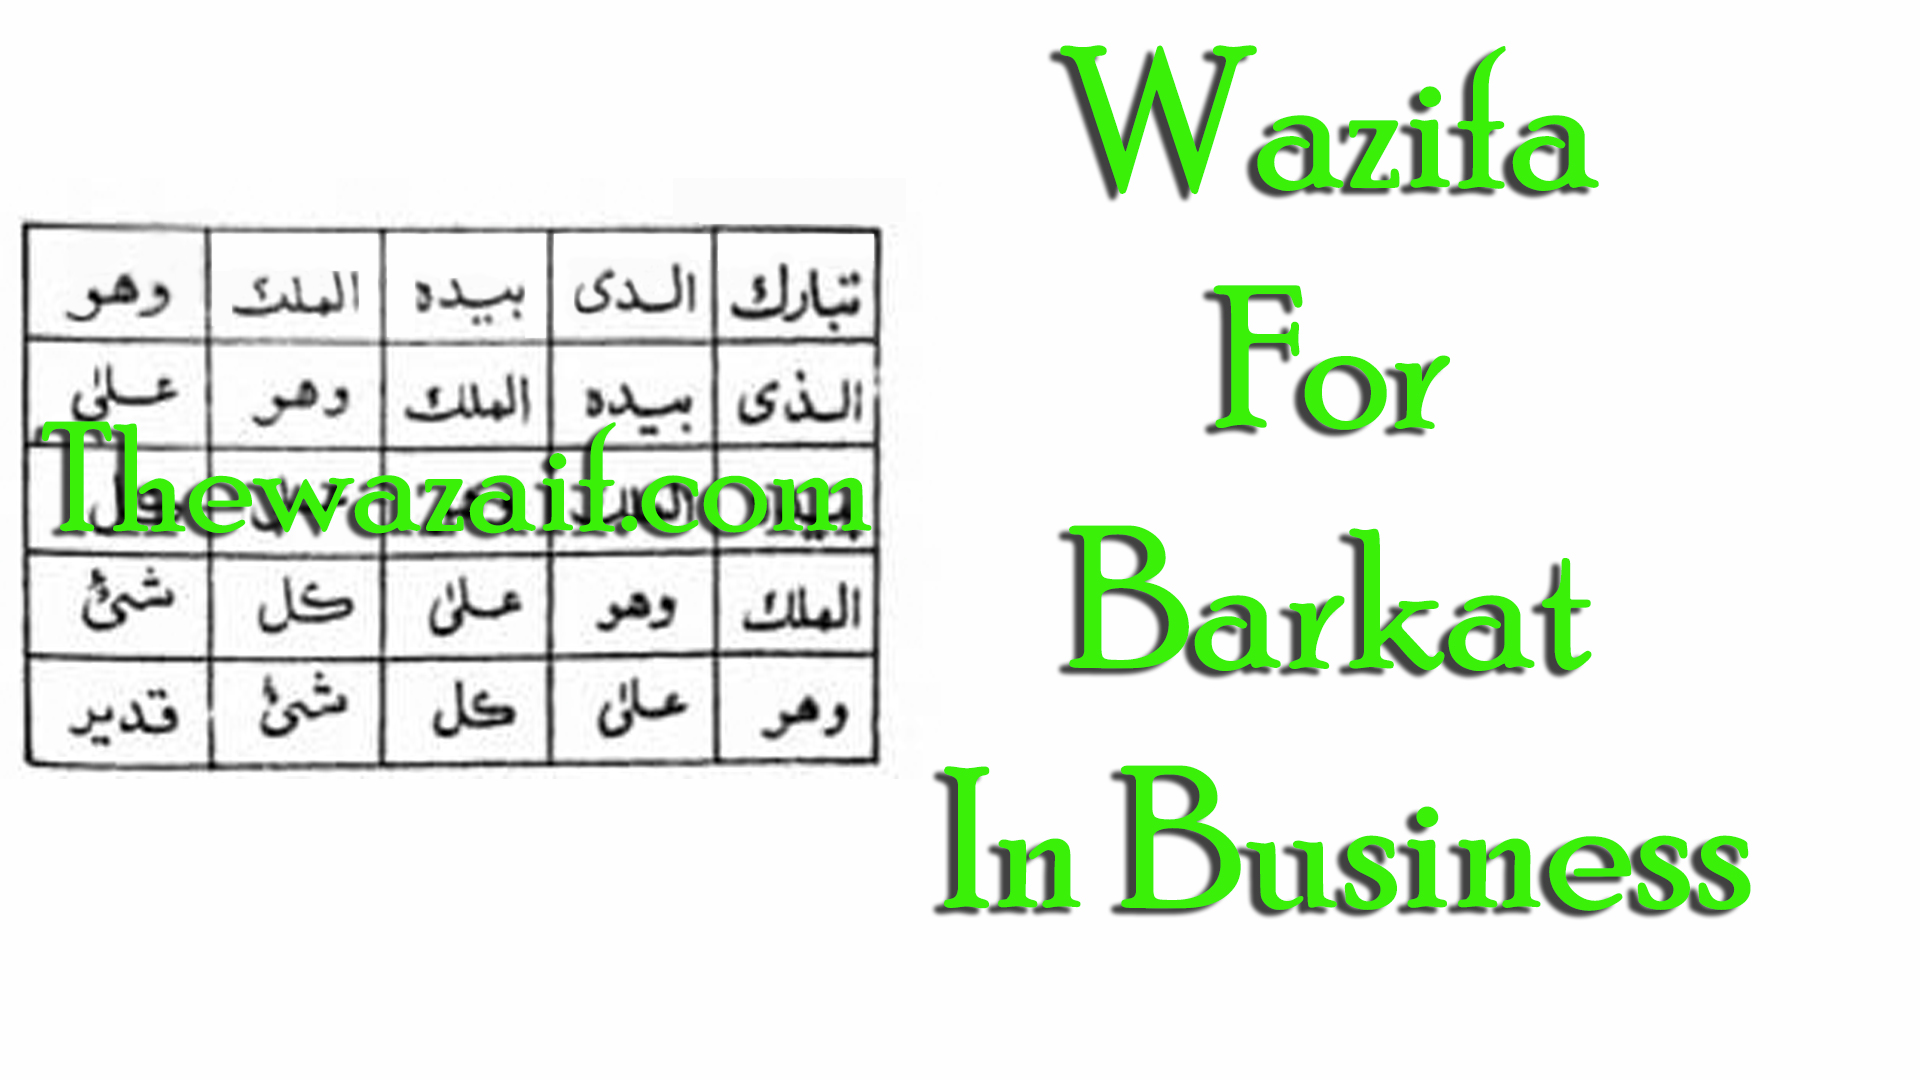 Strong Wazifa For Barkat In Business - Grow Your Business